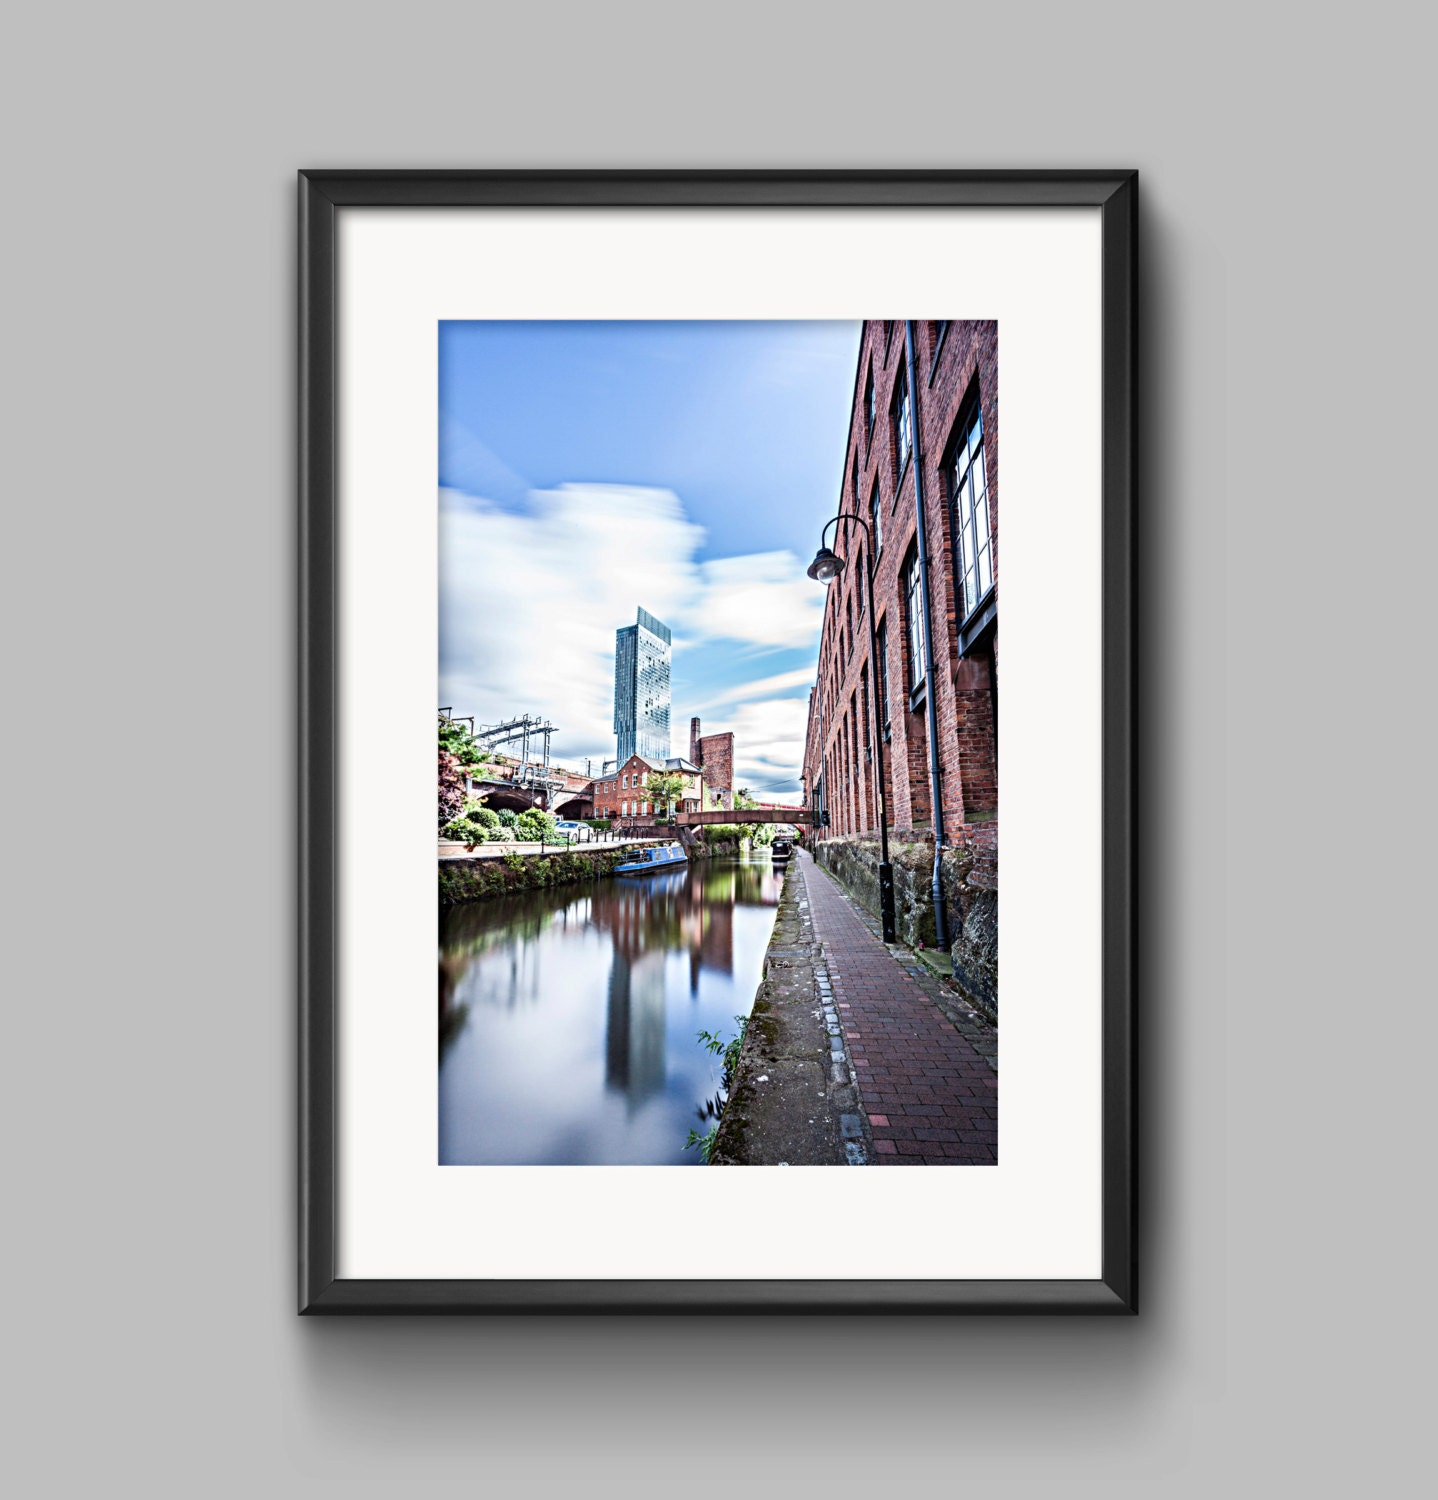 Line Art Rochdale : Colour landscape photograph of the rochdale canal fine art